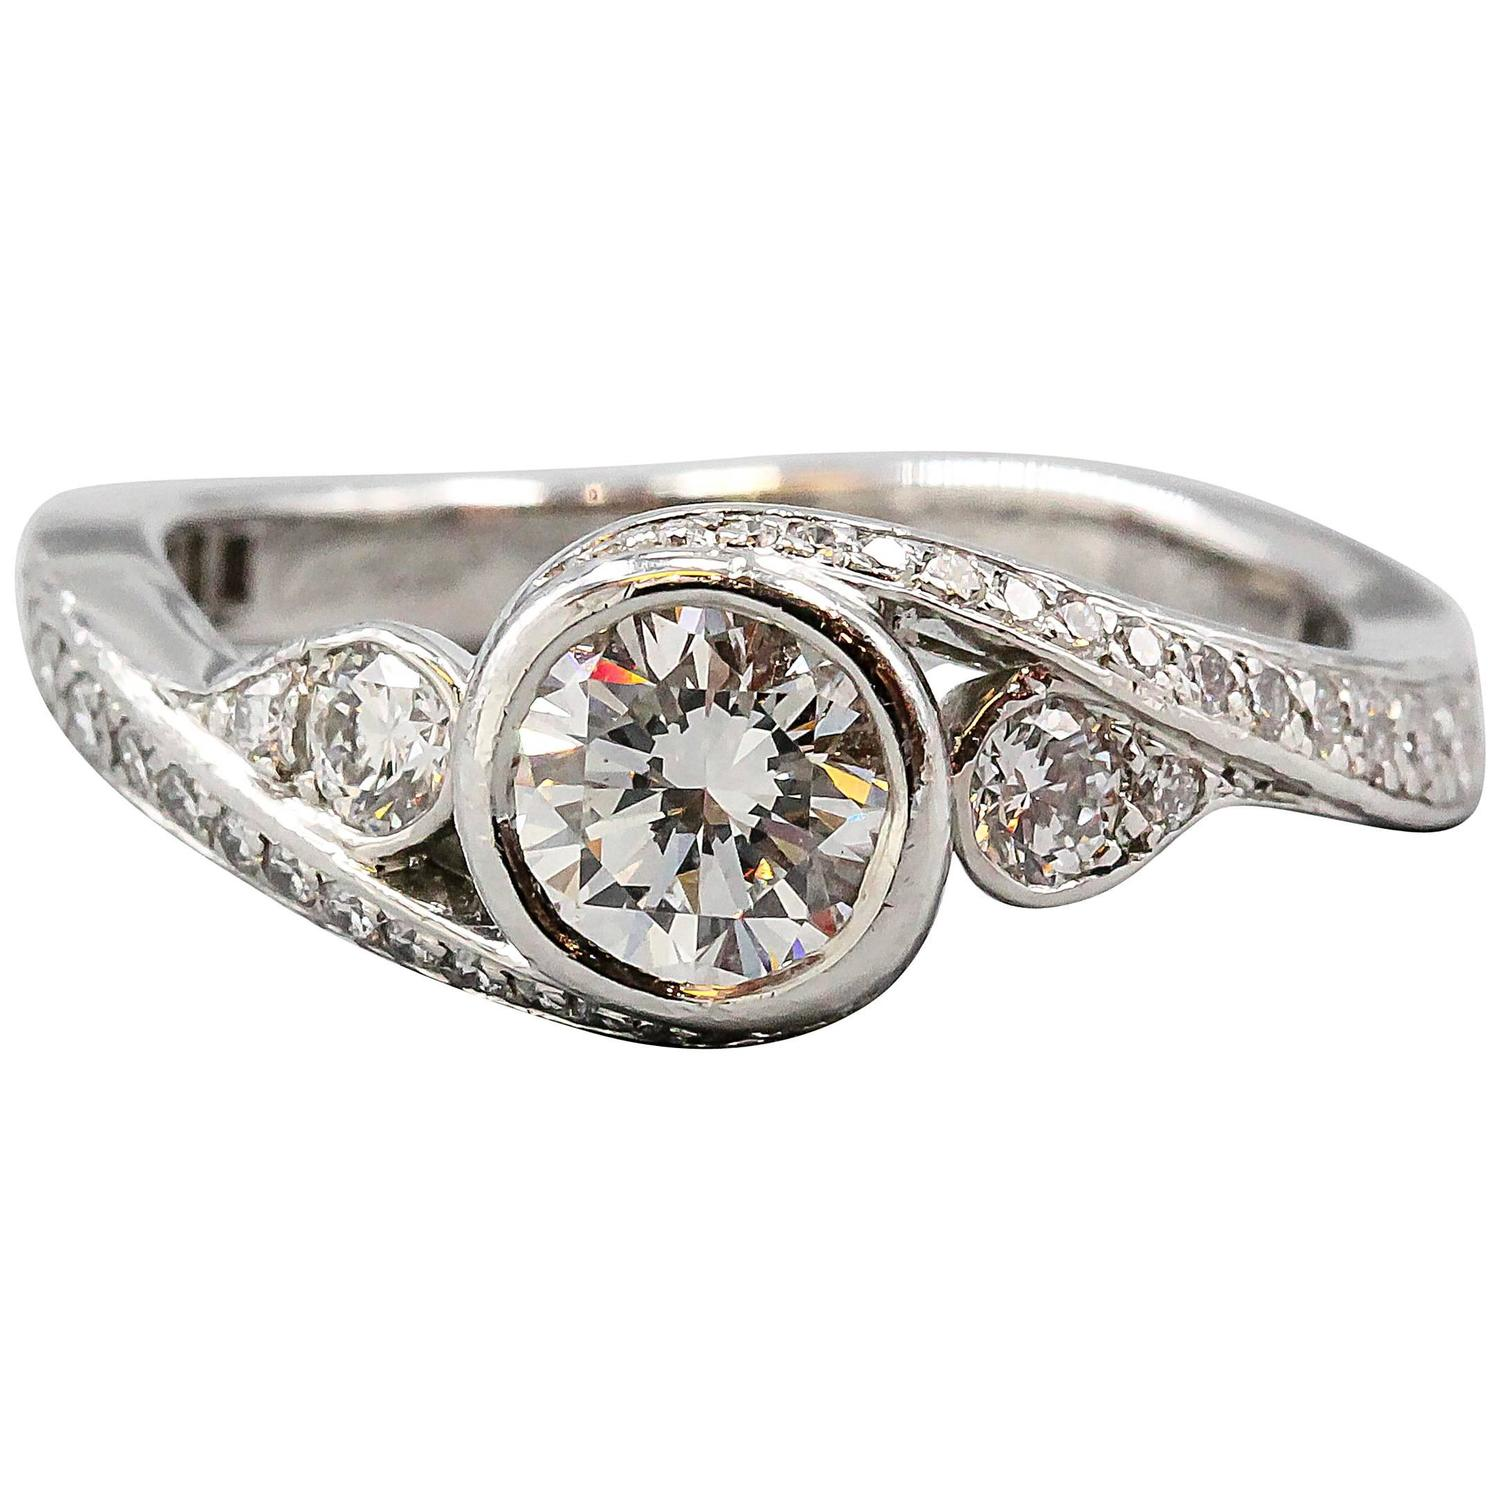 Cartier Diamond Platinum Engagement Ring For Sale at 1stdibs